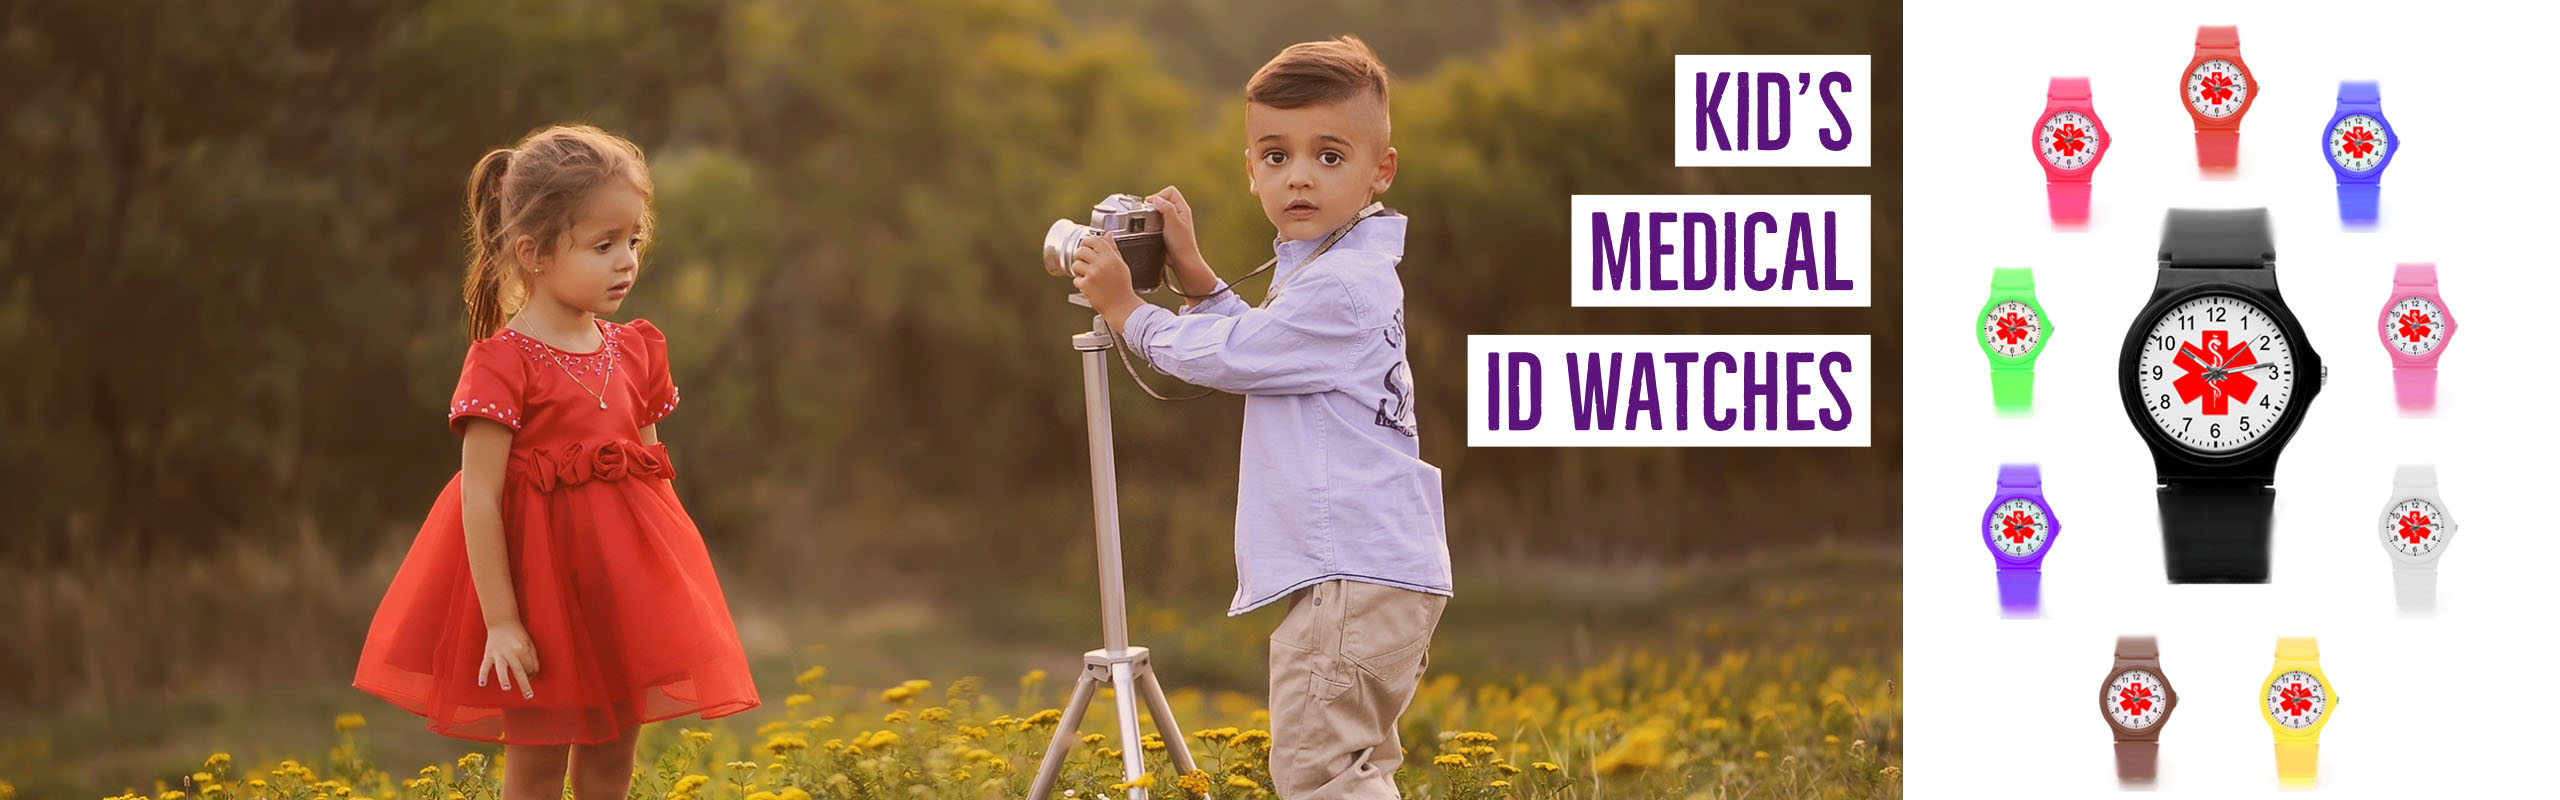 Cool and Stylish Kid's Medical ID Watches